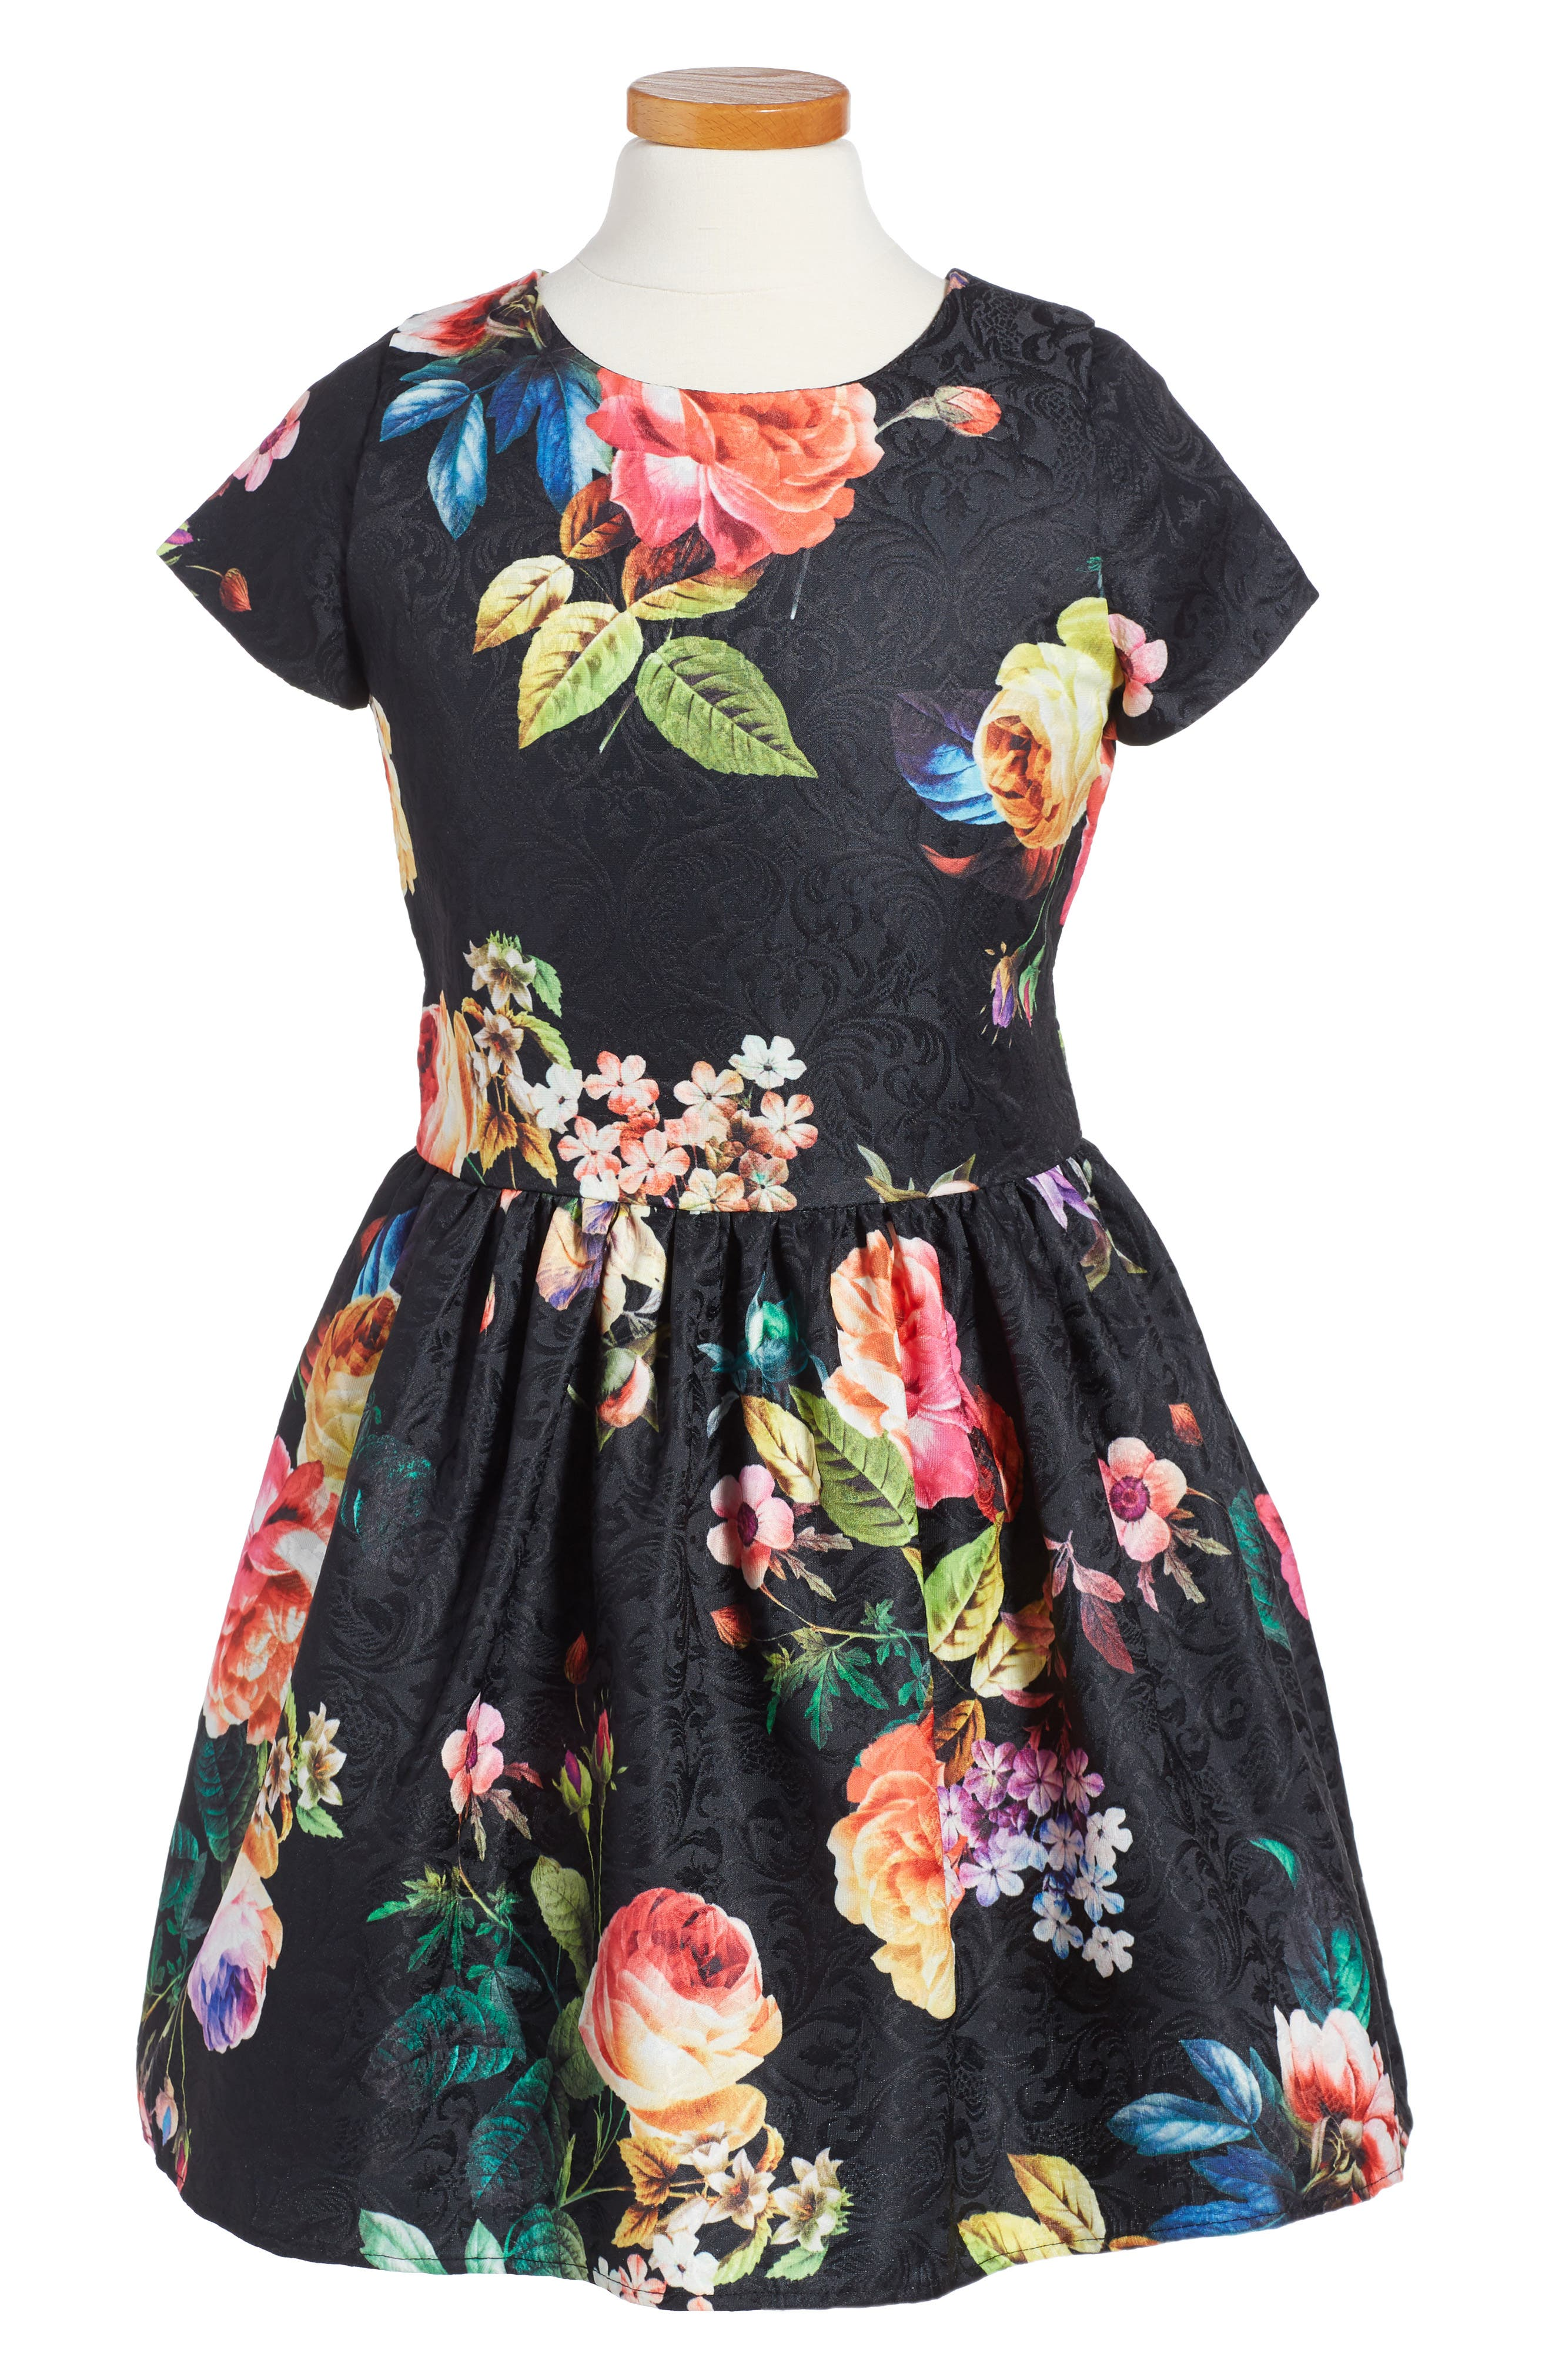 Alternate Image 1 Selected - Ava & Yelly Floral Brocade Dress (Big Girls)